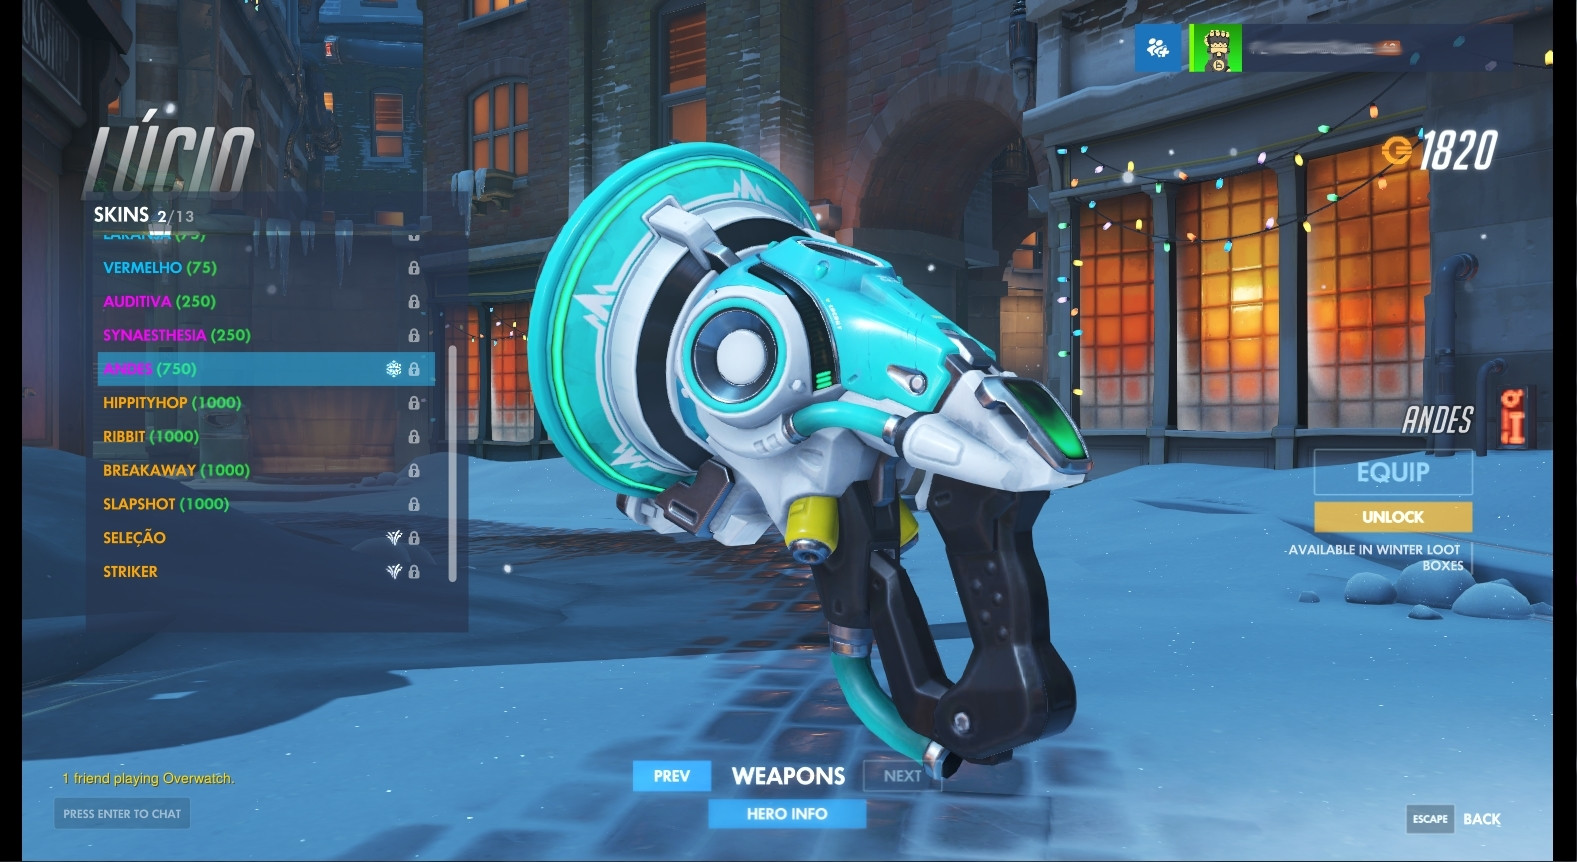 Lucio (Andes) Weapon